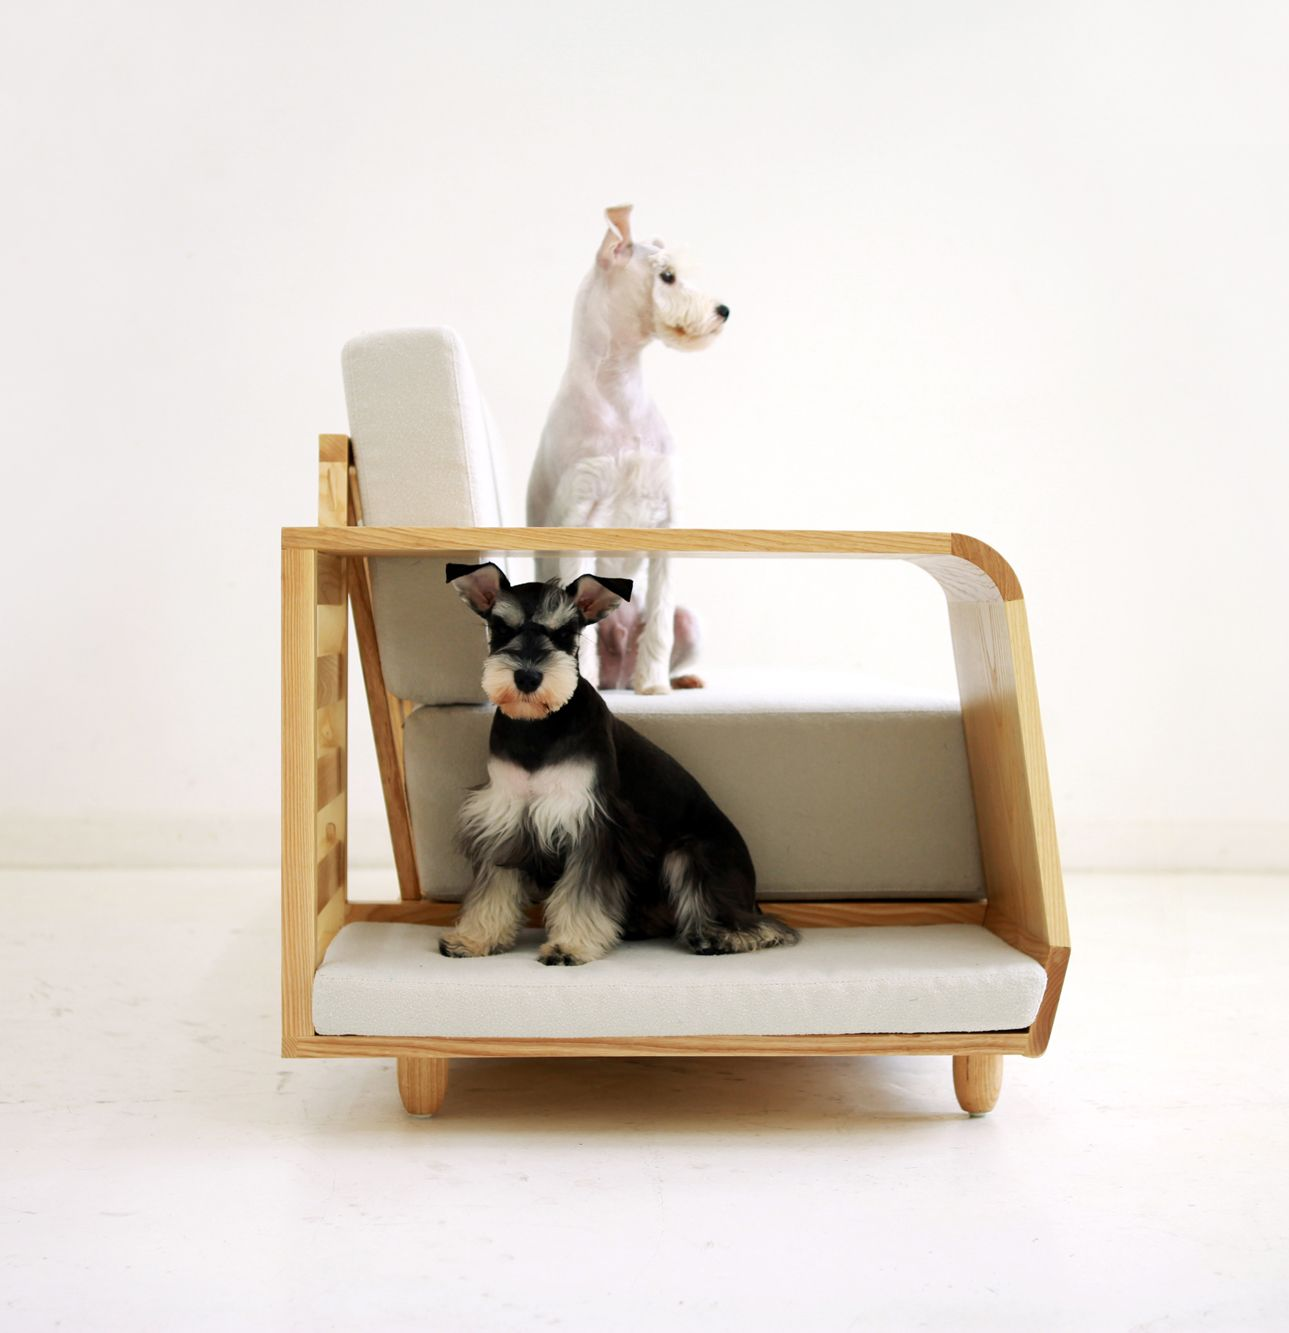 Mpup Dog Sofa By Seungji Mun Design For Animals Pinterest  # Muebles Sleeping Dogs